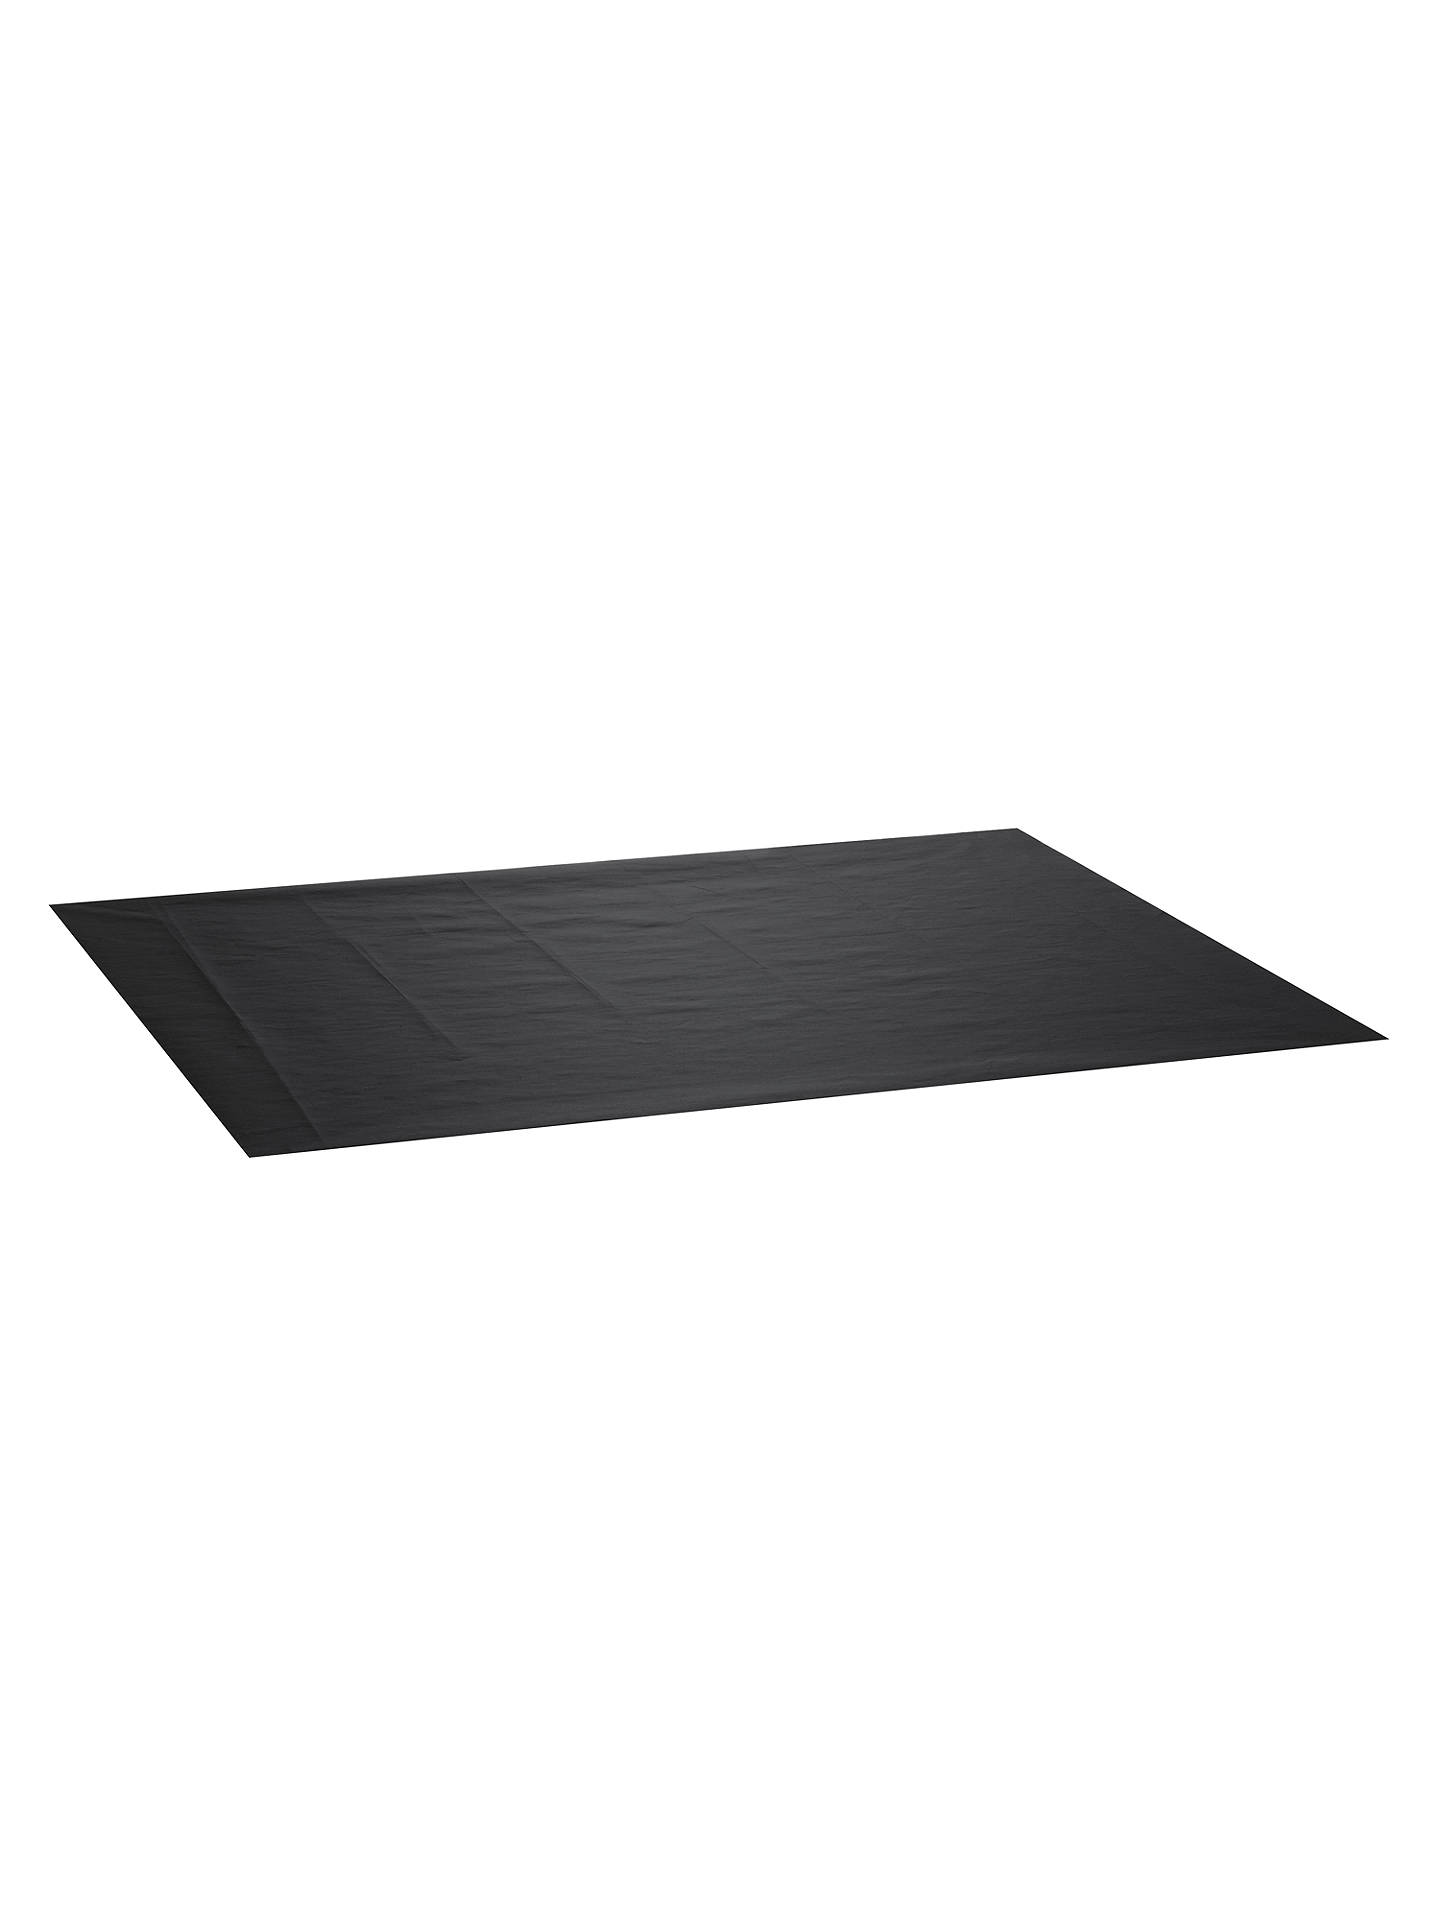 Teflon Nonstick Cooking Mat, 30 X 40cm At John Lewis